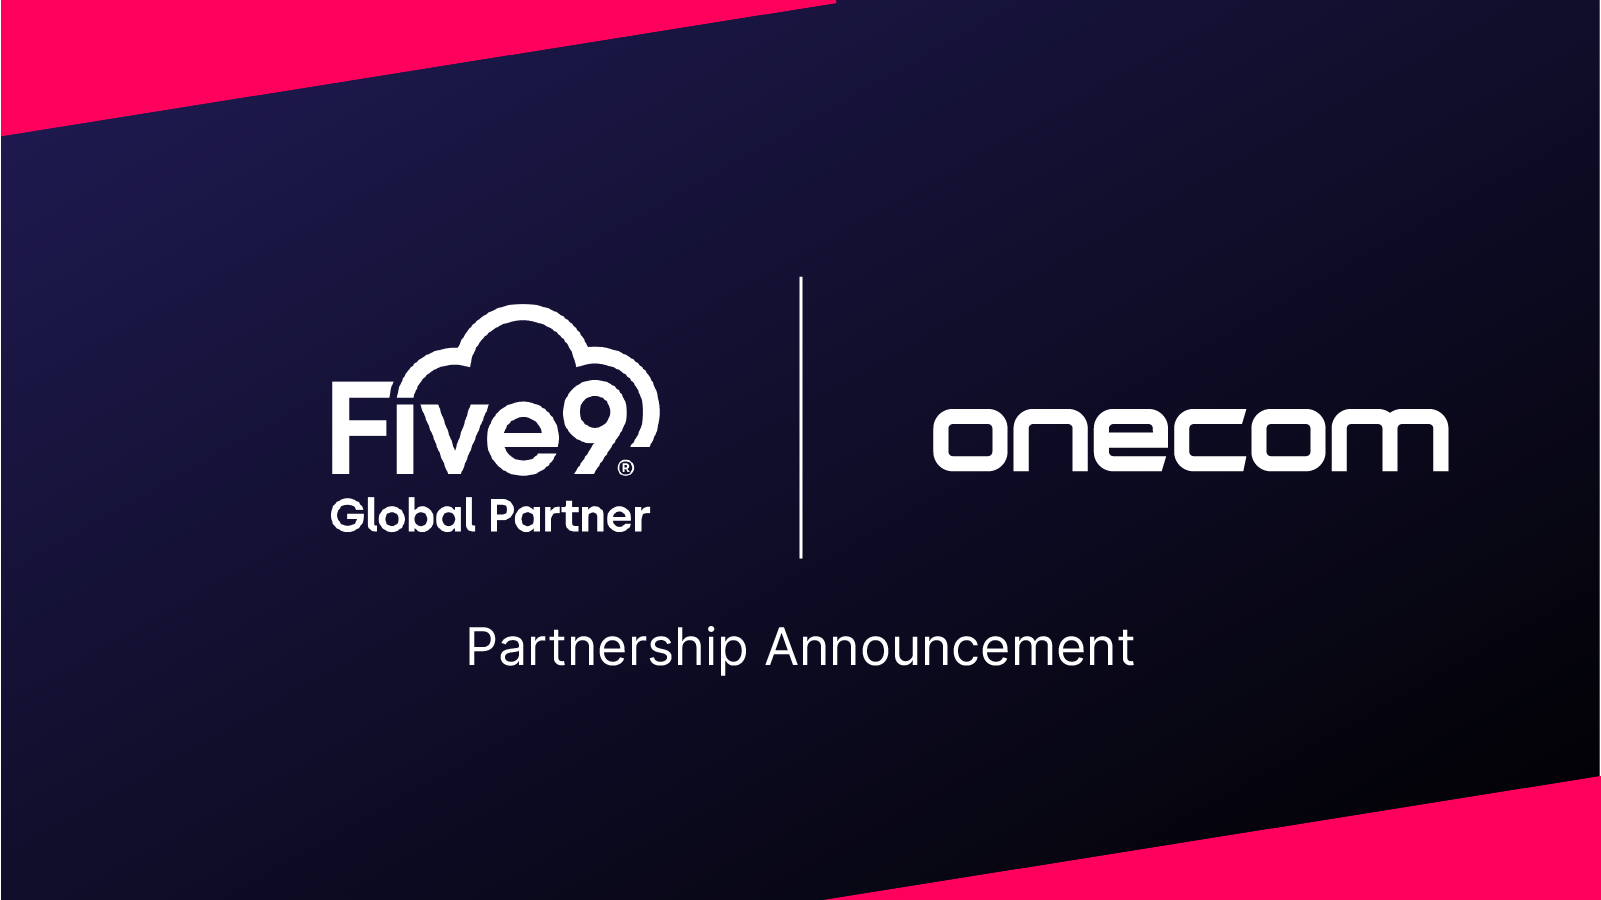 Onecom announces partnership with global contact centre leader Five9